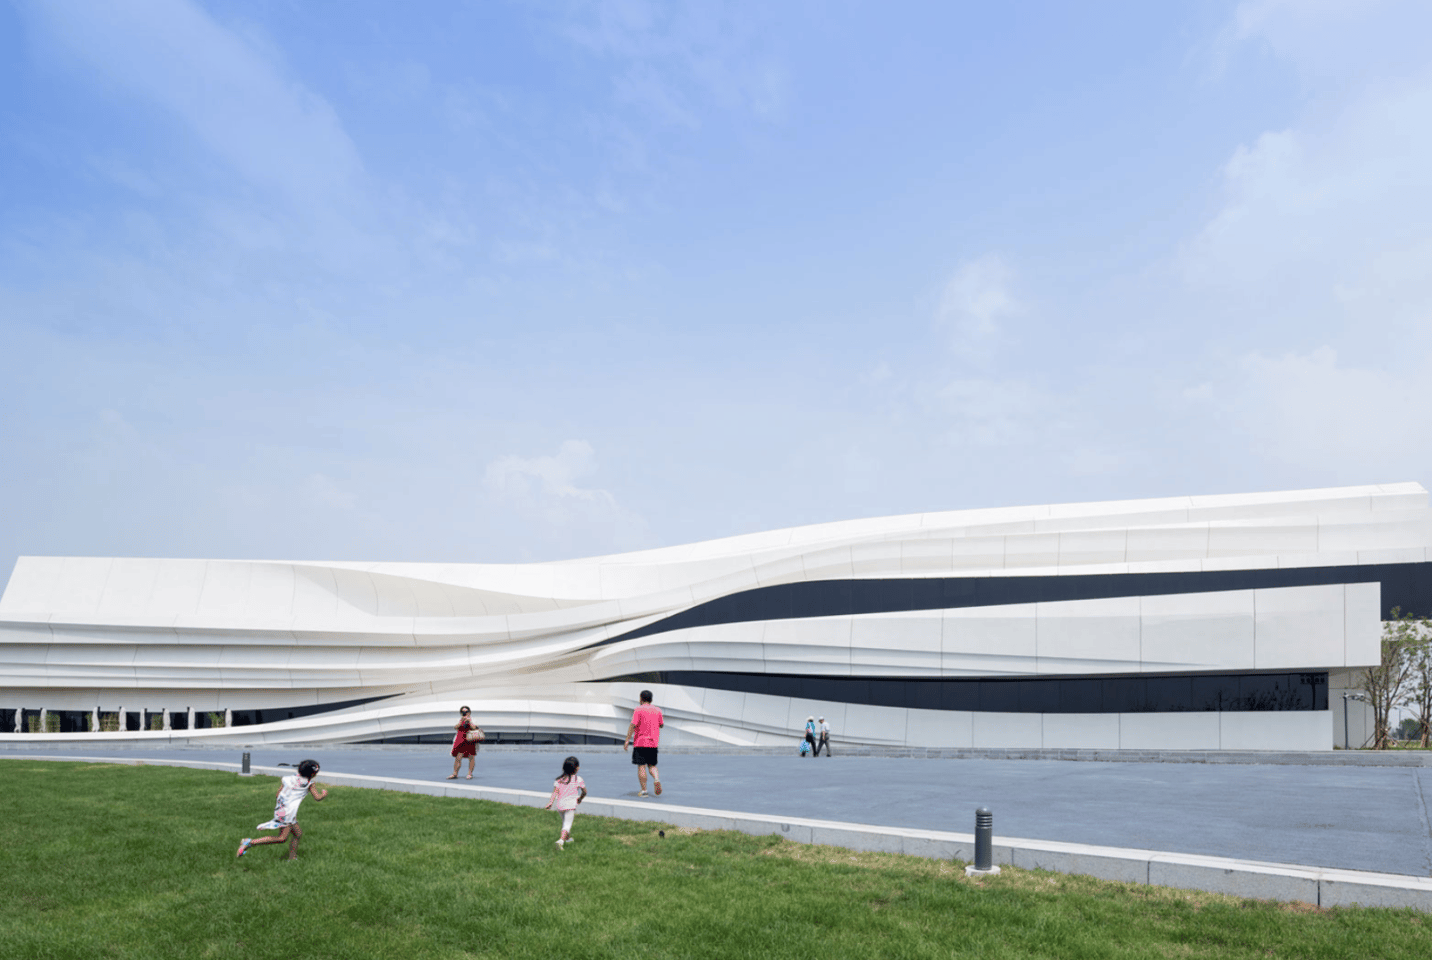 From a collaborative group of Chinese architects and designers called we architect anonymous, this is the Museum of Contemporary Art (MOCA) in Yinchuan. Completed in 2015